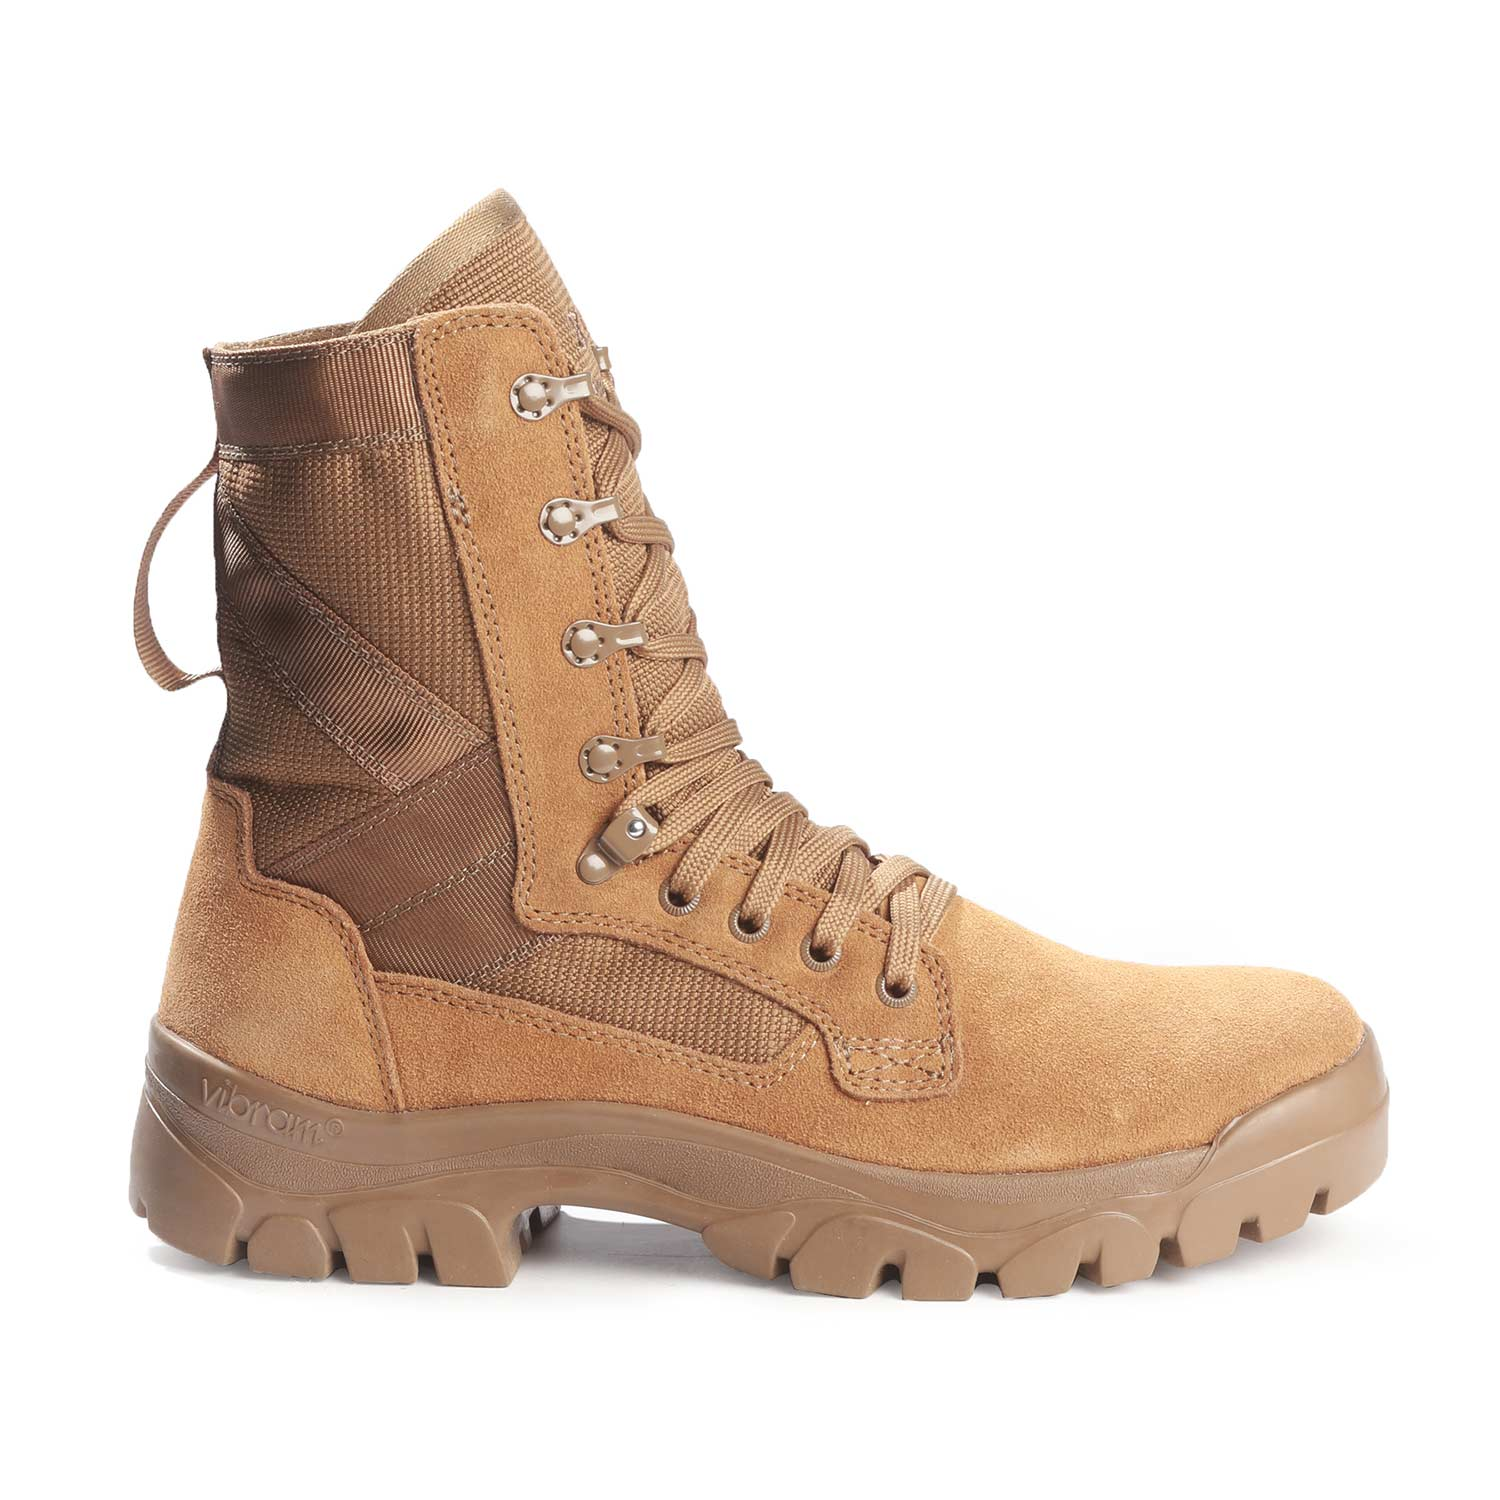 GARMONT T8 EXTREME BOOTS DESERT TAN MILITARY 5.5 Wide